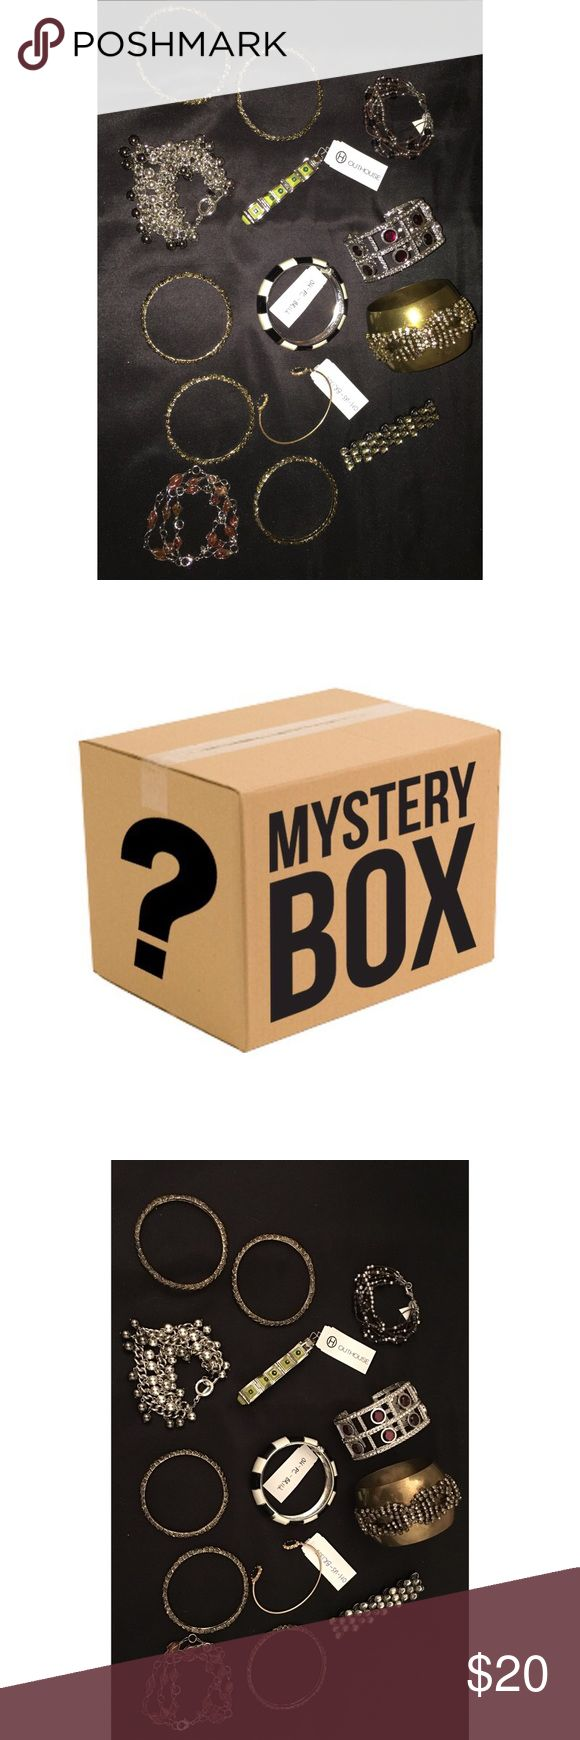 Mystery Box??? Designer Fashion Jewelry Bracelets This Listing Is For Designer Fashion Jewelry Bracelets! The Sale Will Include 5 Bracelets Selected At Complete Random! Some Of The Bracelets Below Could Be Included! Gorgeous Jewelry! Great Buy!!!! Brands Include....OUTHOUSE, J.Crew, Chico's, Free People, Anthropologie And Many More!!!! Don't Miss Out On Your Amazing Surprise Box! NO ITEMS WILL BE THE SAME ALL ITEMS WILL BE DIFFERENT!!!! Free People Jewelry Bracelets